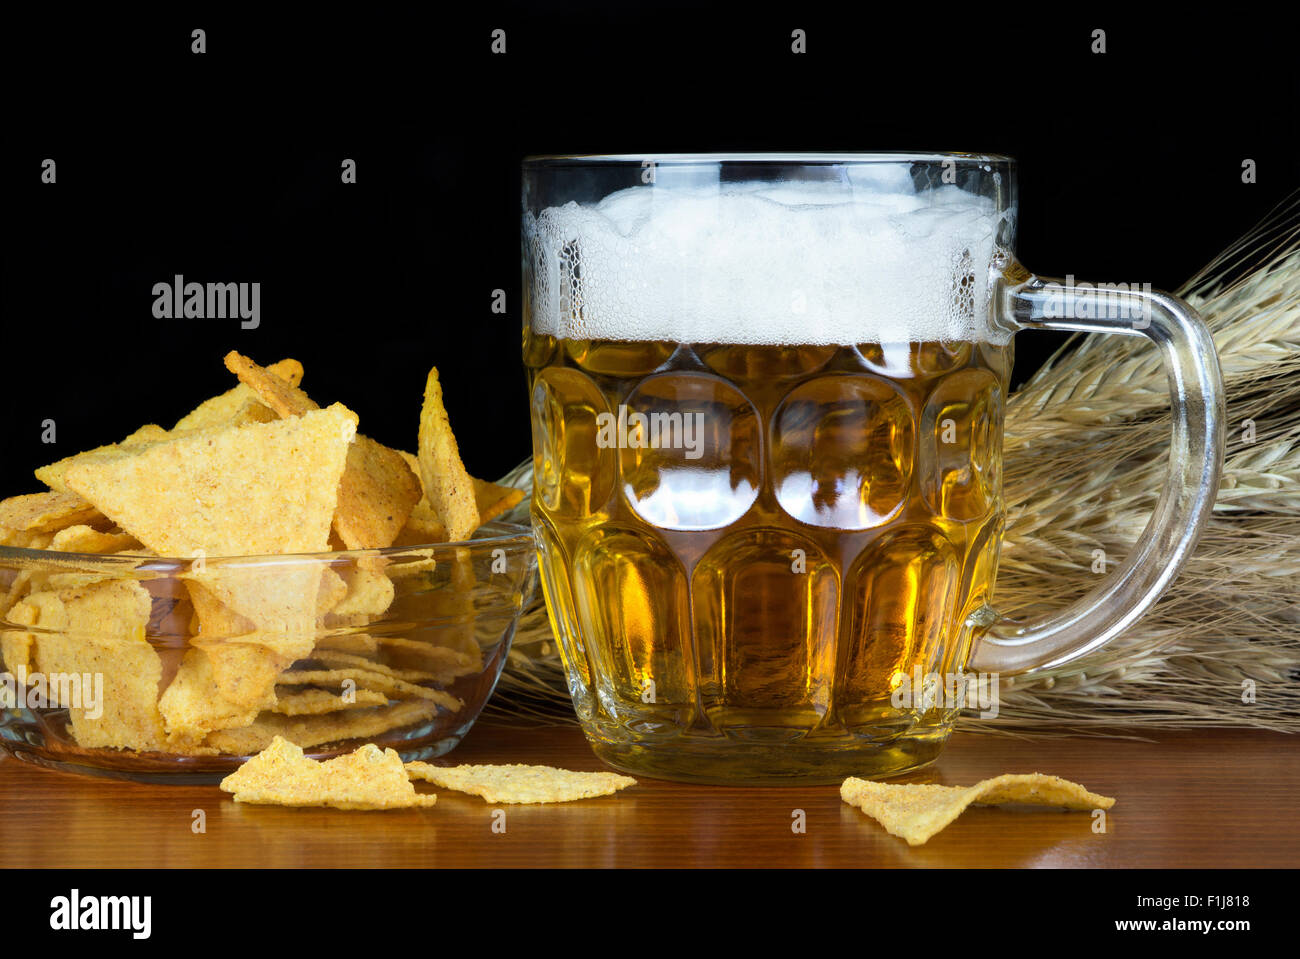 Pint of beer and chips with wheat on black background. - Stock Image